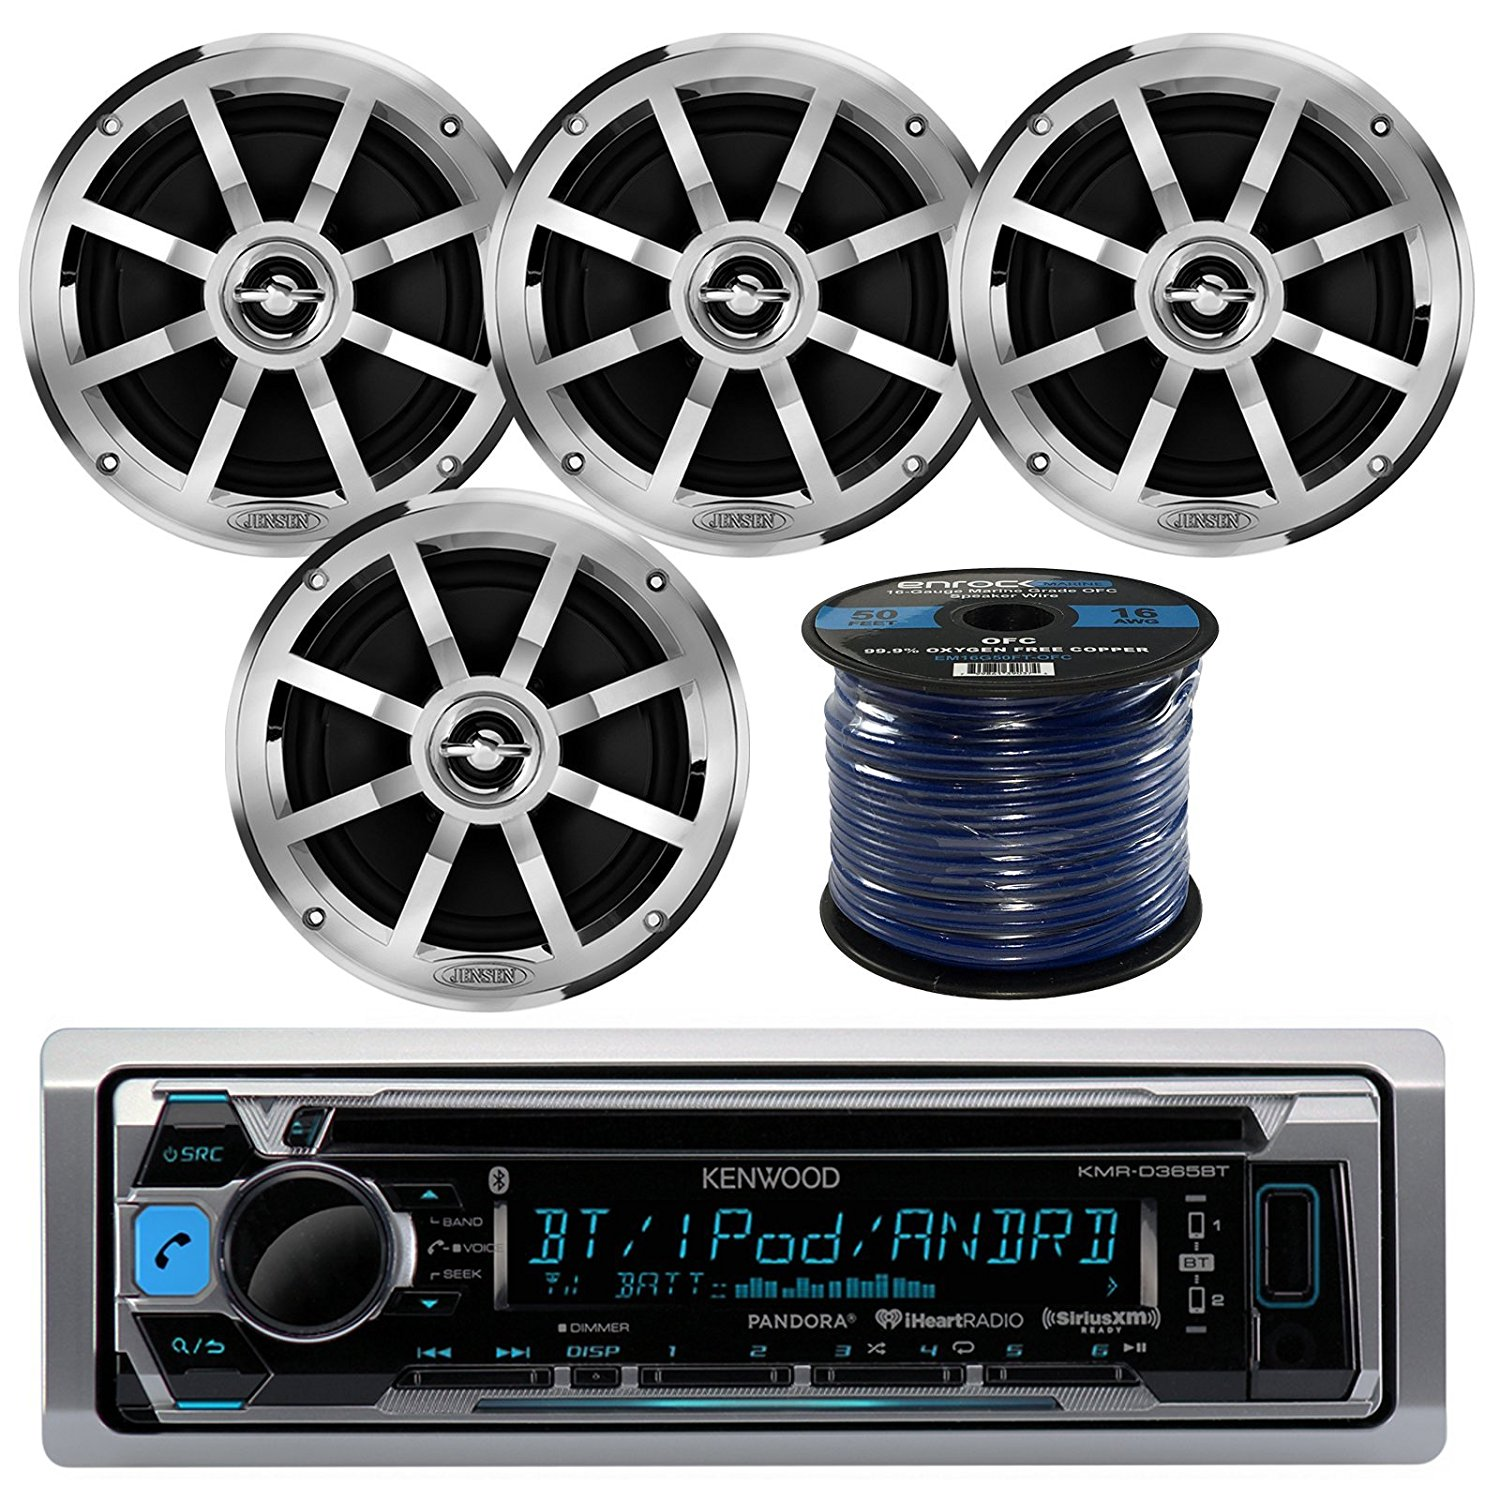 """Kenwood KMR-D365BT MP3/USB/AUX Bluetooth Marine Boat Yacht Stereo Receiver CD Player Bundle Combo W/ 4x Jensen MSX60CPR 6.5"""" Inch 2-Way Coaxial Speakers + Enrock 50 Foot 16g Speaker Wire"""